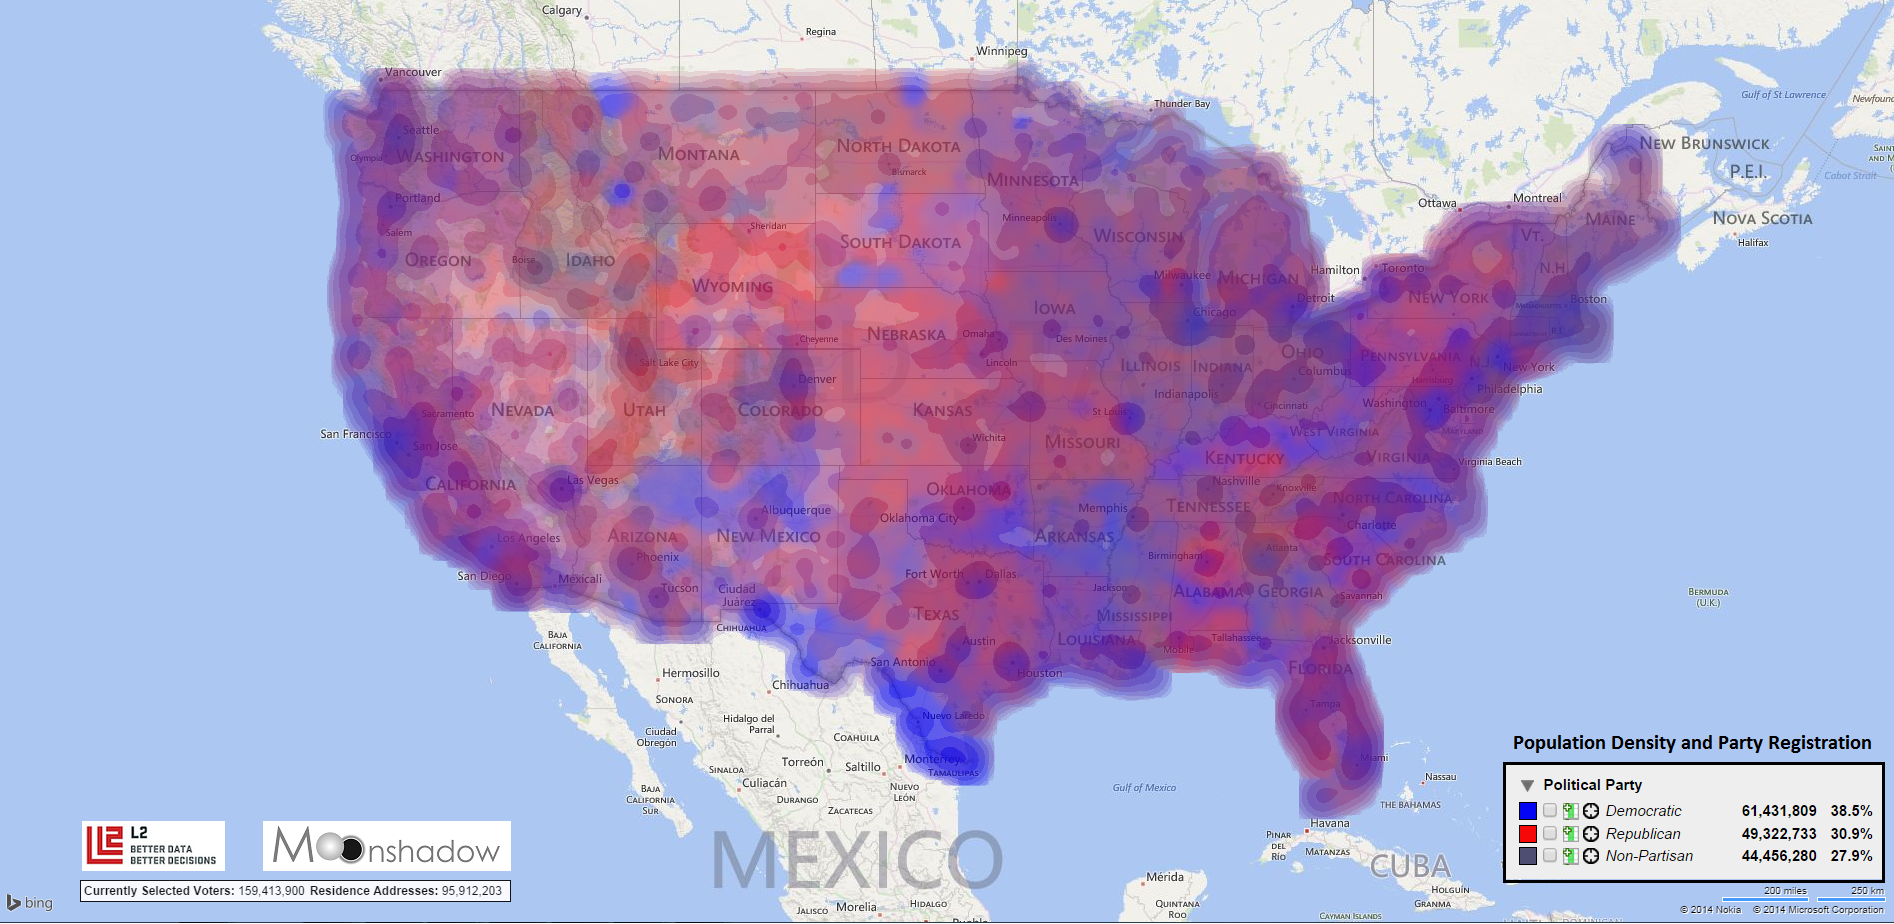 Data Density Maps for Registered Voters - Moonshadow on